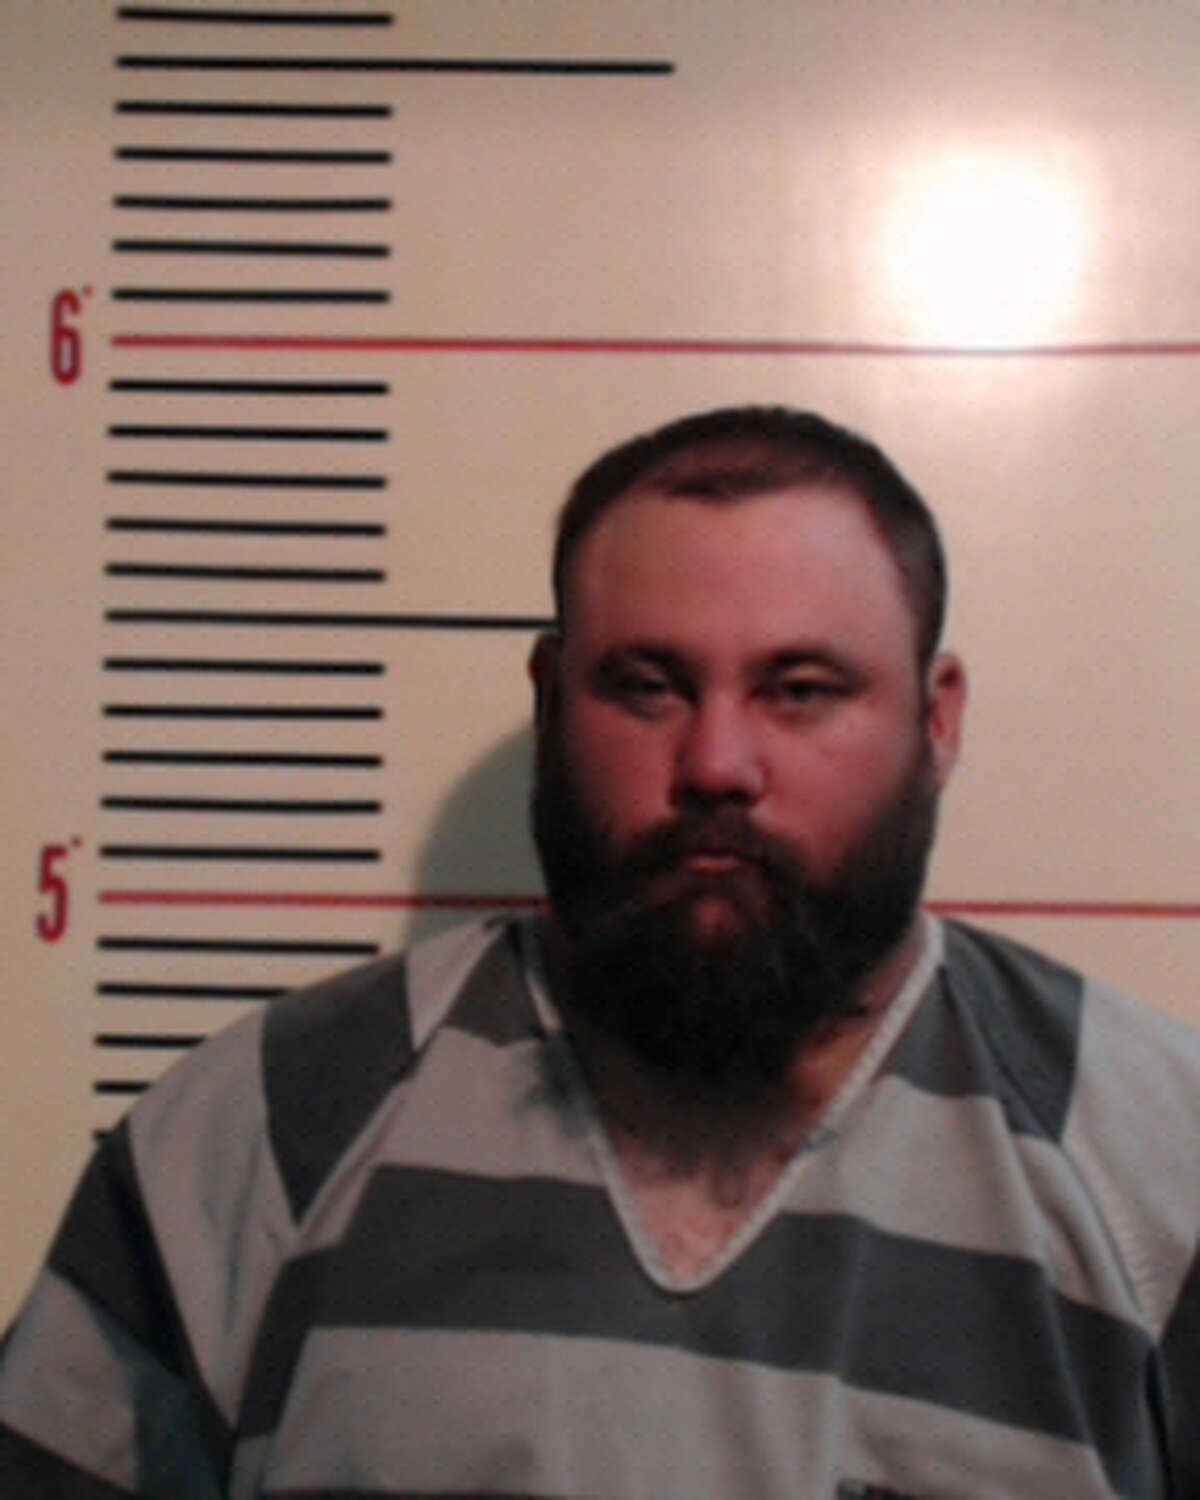 Scott Alan Bradley, 32, was arrested Nov. 3, 2017 in Weatherford and charged with public intoxication after police said they found him driving a lawn mower.